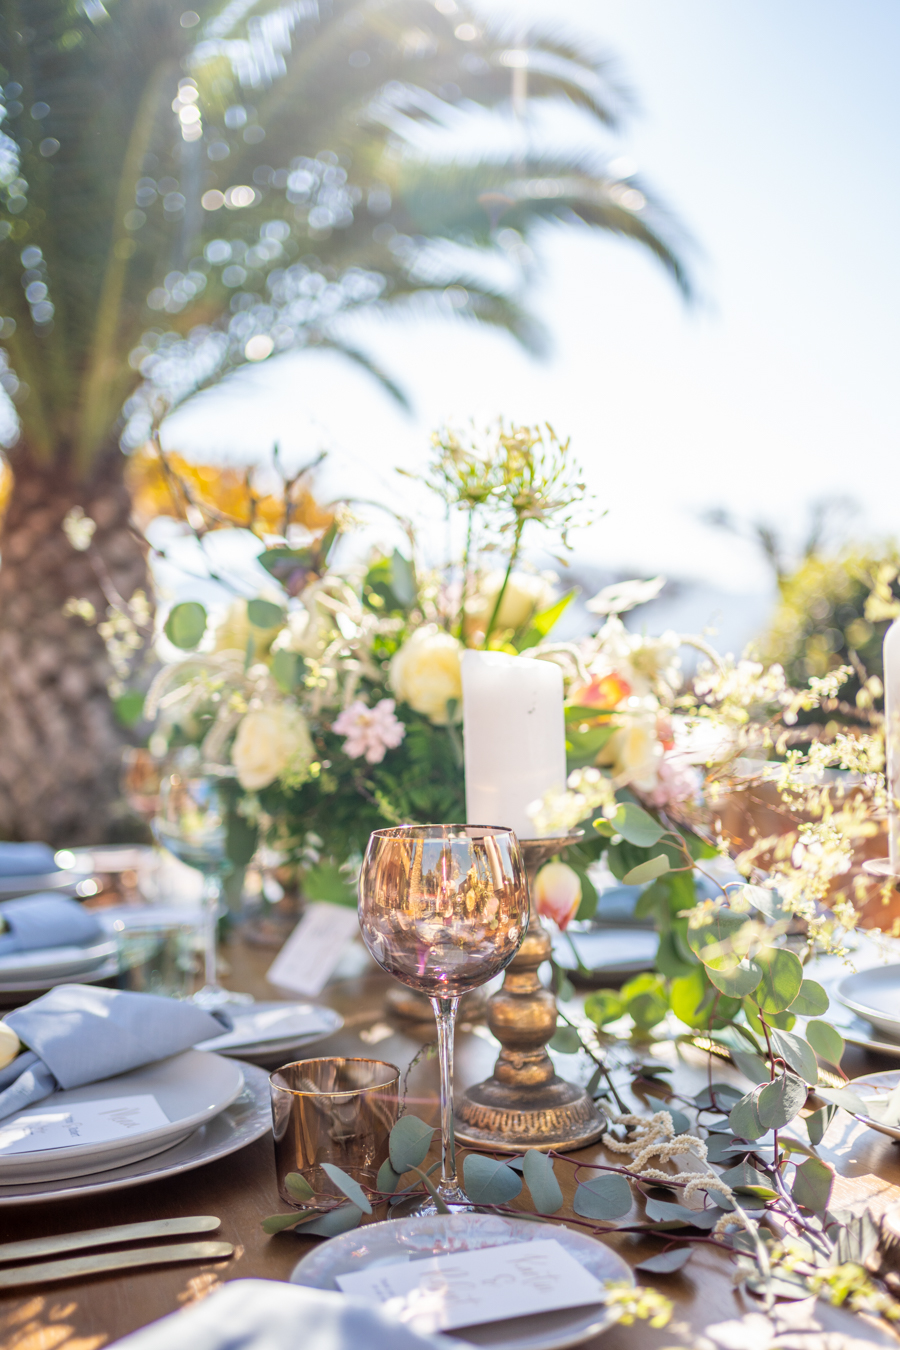 Table setup with a view of a palm at the majestic castle in Athens